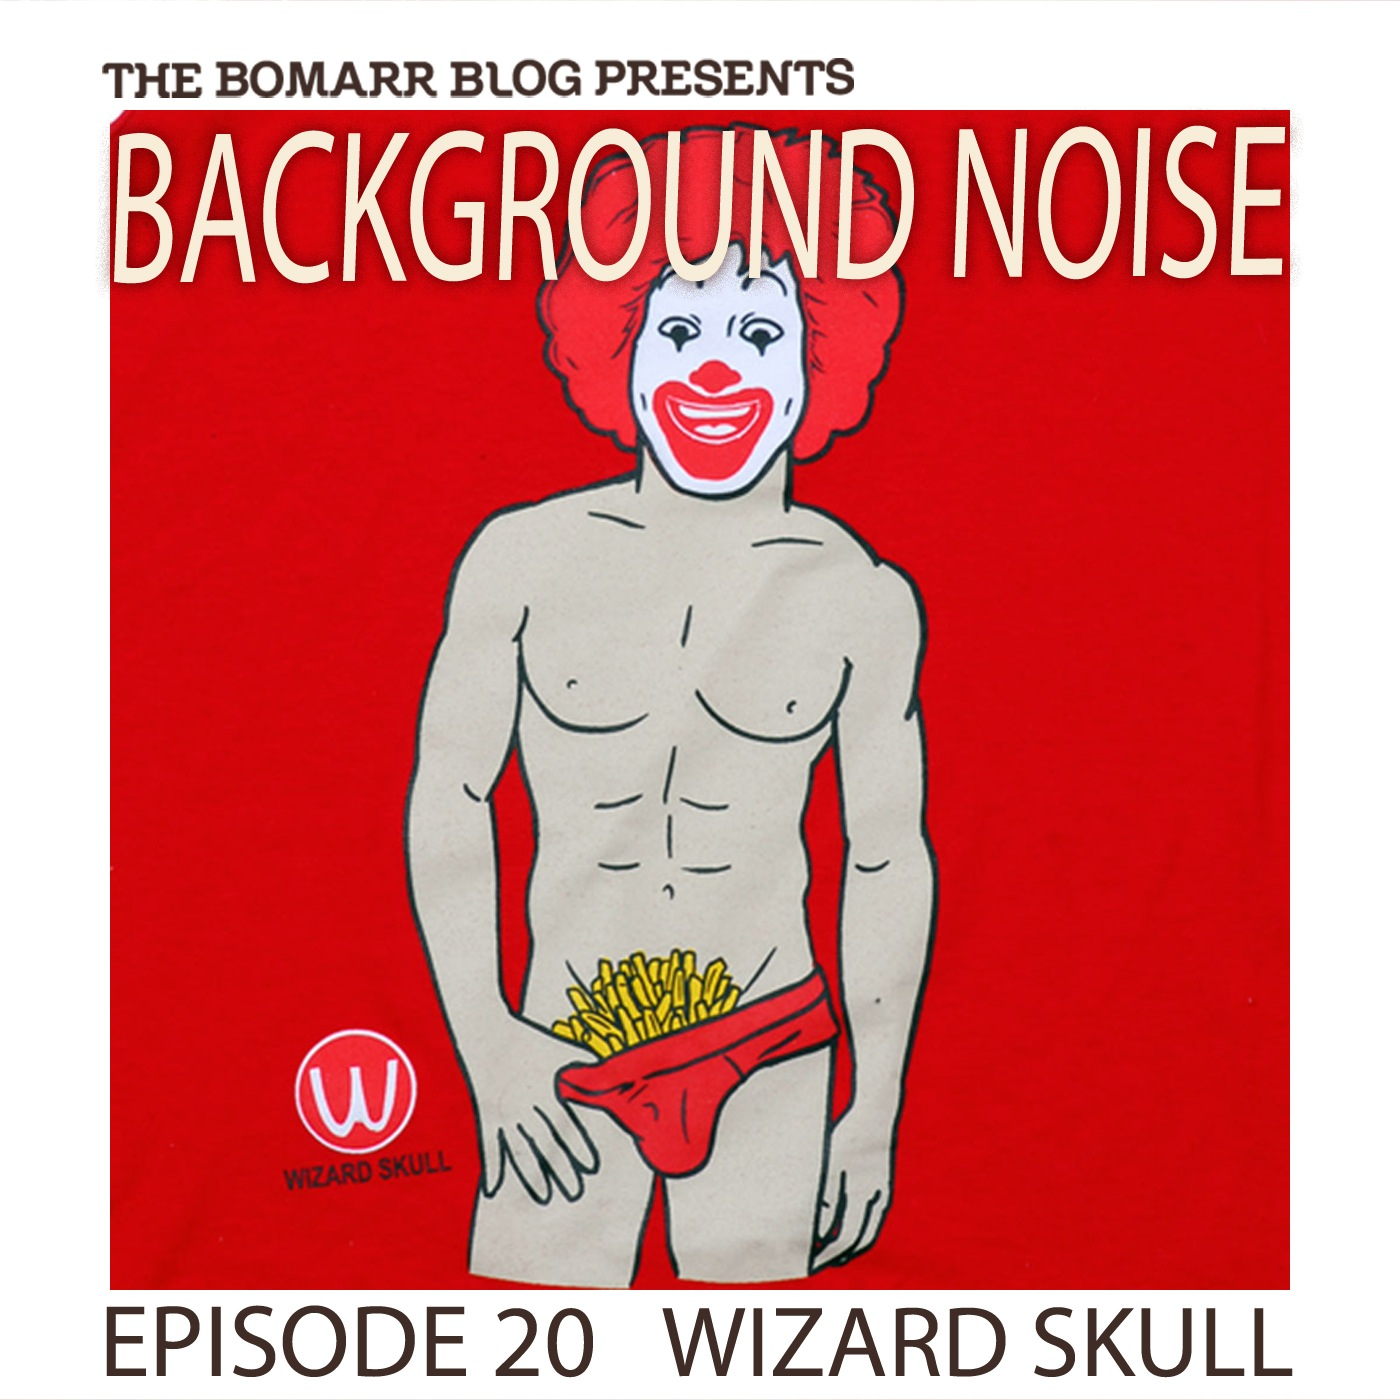 "The ""Background Noise"" podcast series focuses on the music that artists listen to when they work, what music inspires them, or just music they like. This week, in Episode 20, the focus is on Brooklyn's  Wizard Skull ."